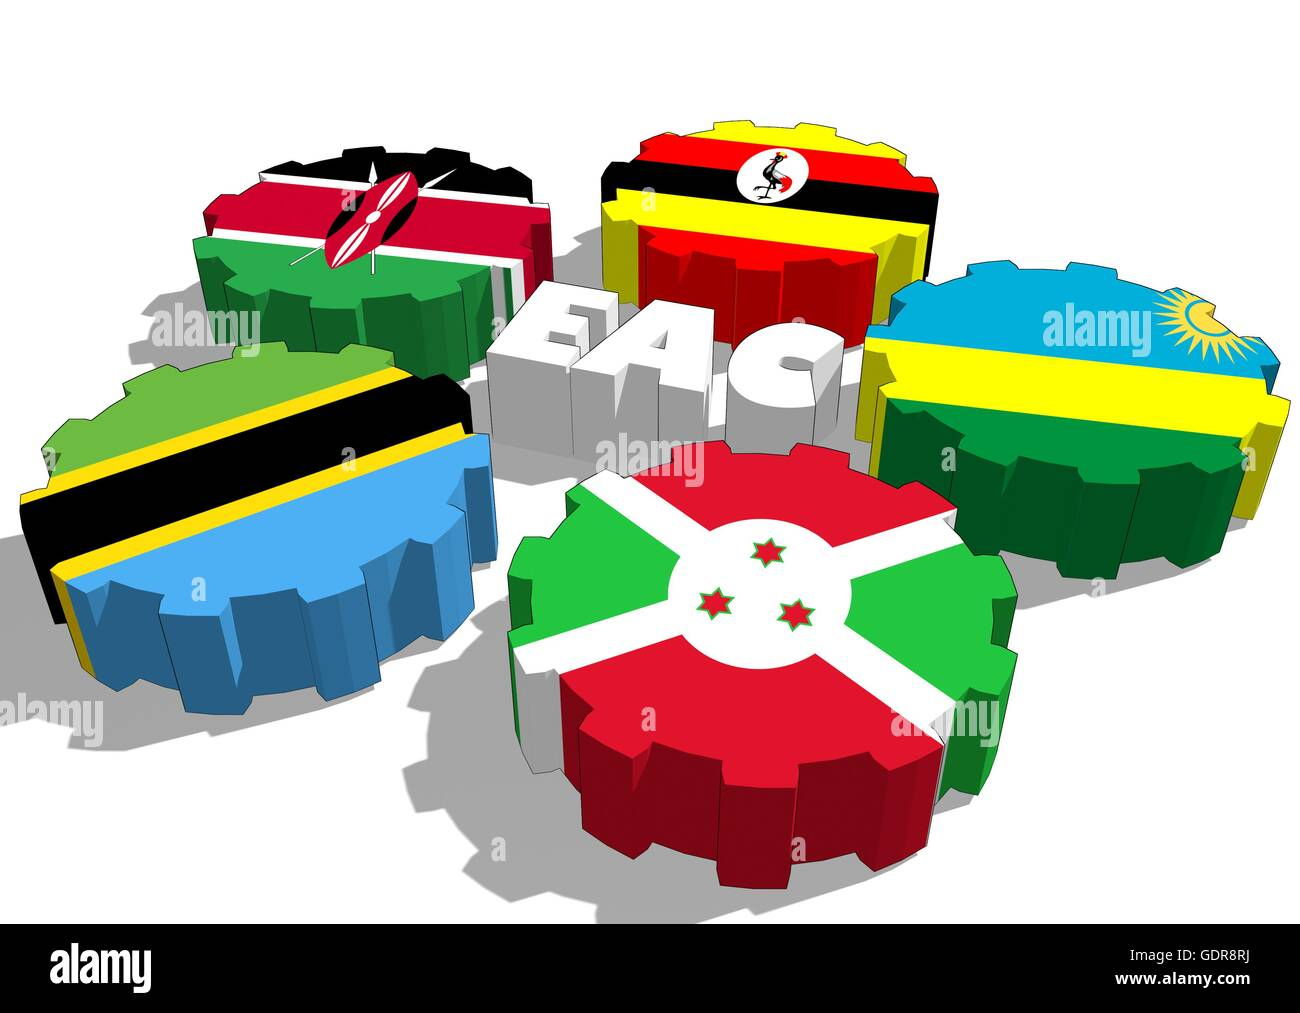 east african community 3 the east african community • comprises the republics of kenya, uganda and the united republic of tanzania • total combined area 18 million square kilometers.